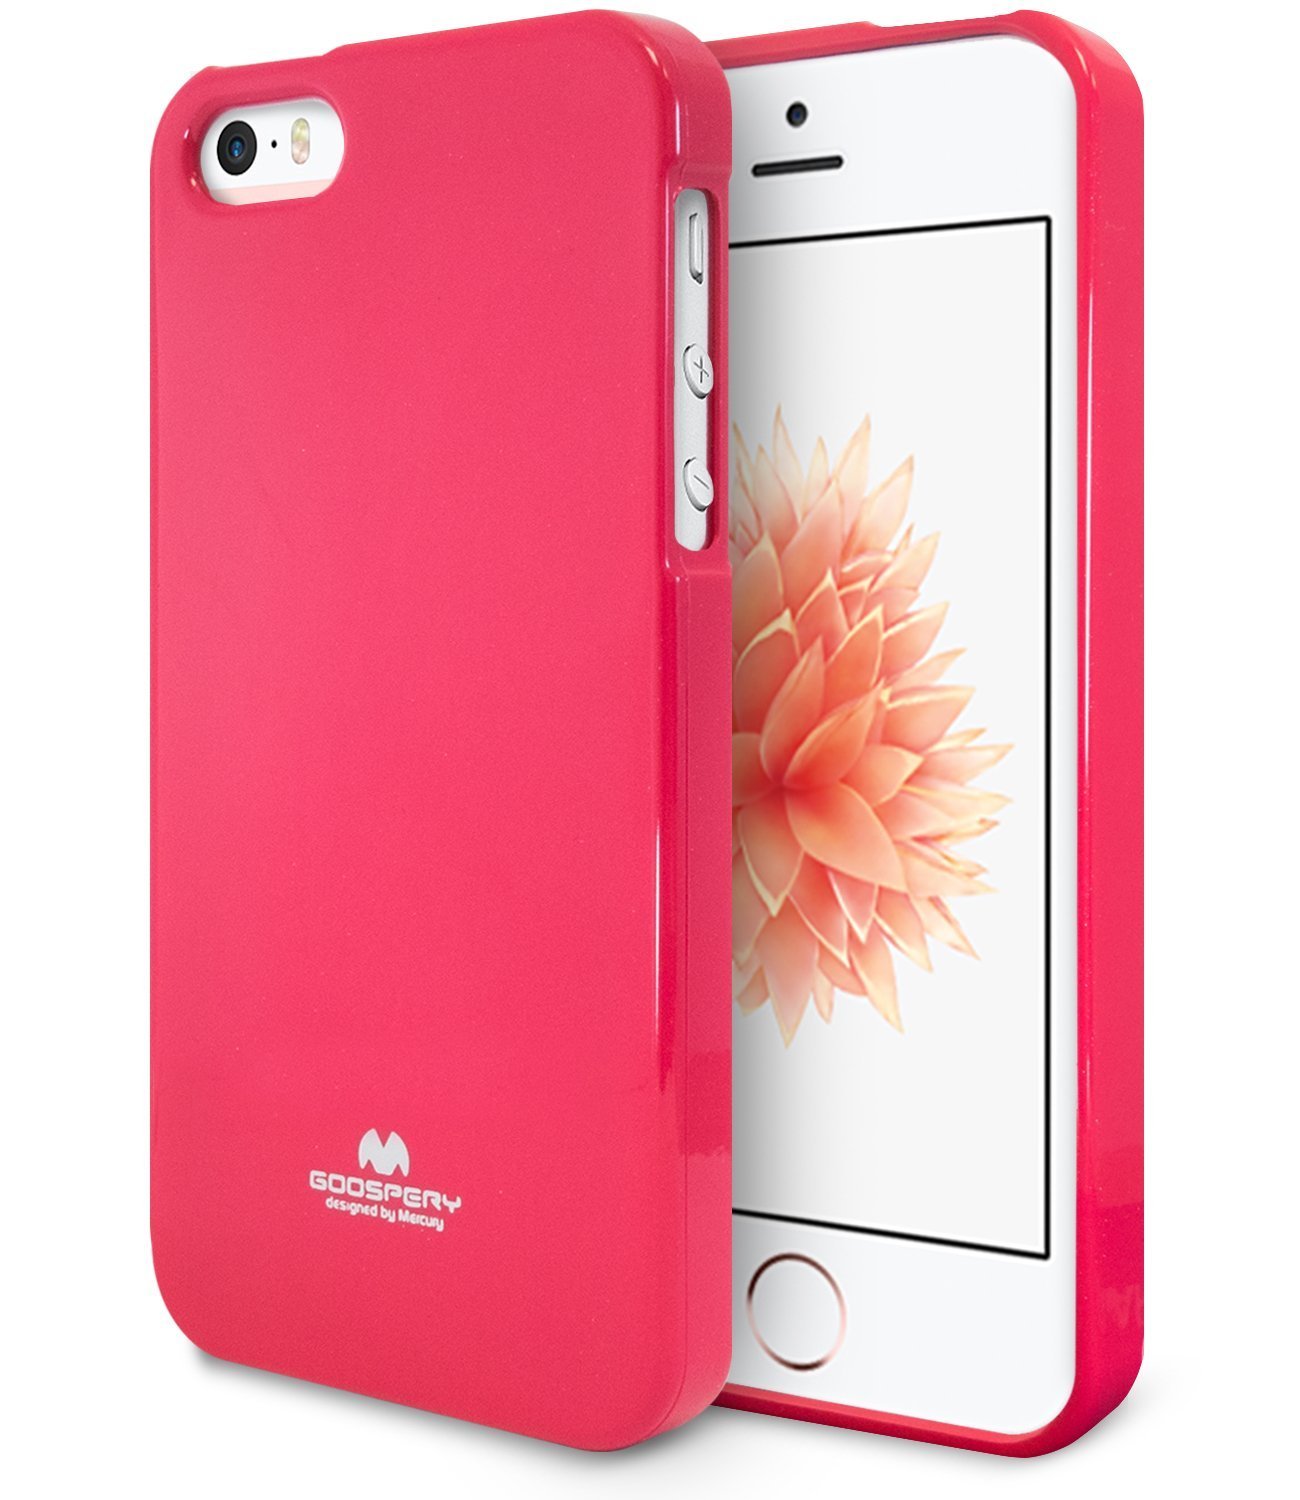 Pouzdro / kryt pro Apple iPhone 5 / 5S / SE - Mercury, Jelly Case Hotpink